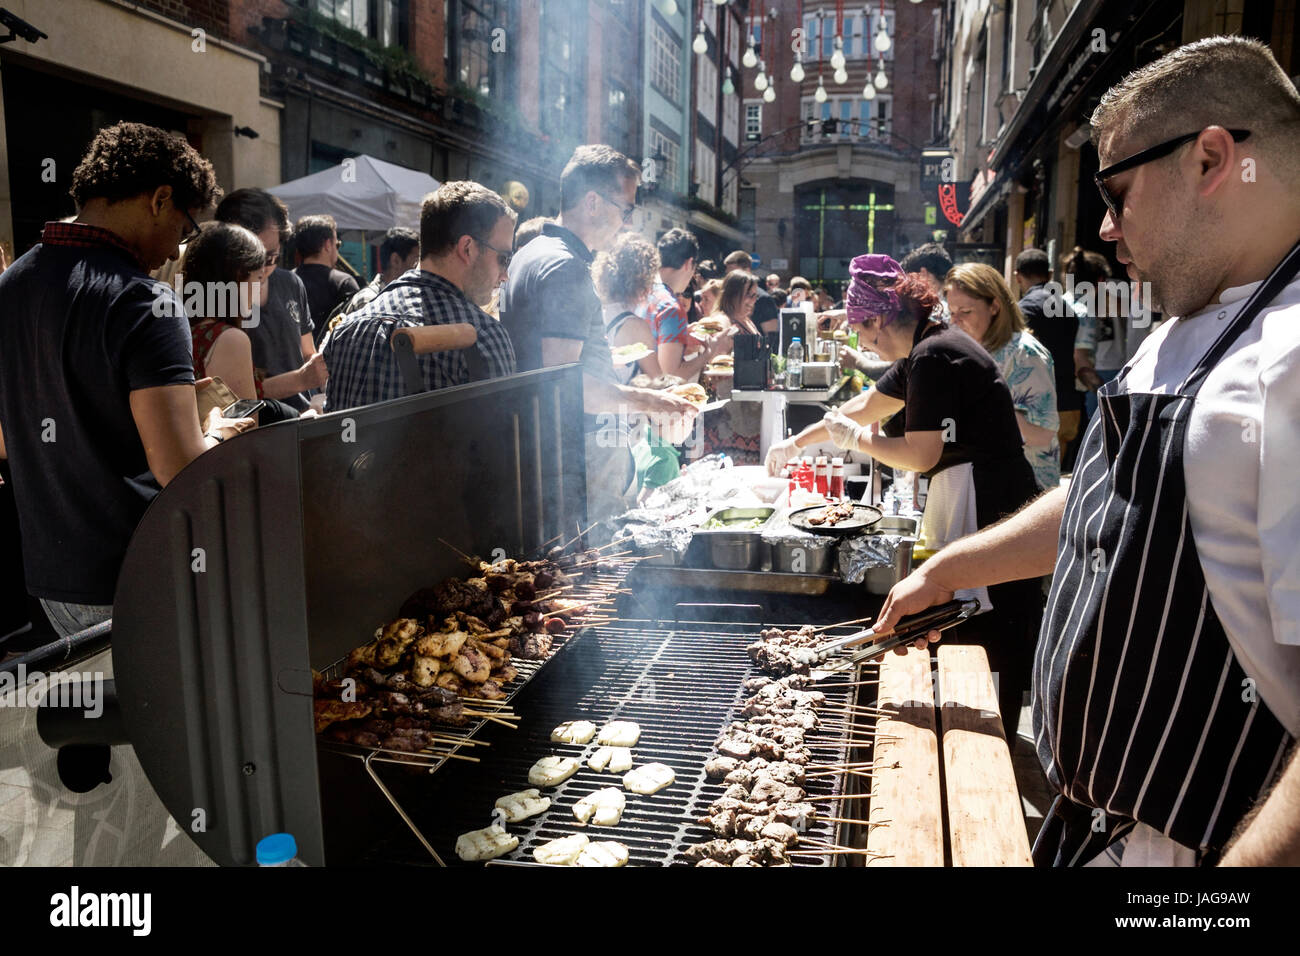 """A street food festival in Carnaby Street London: """"Carnaby Street Eat"""". London street food London. Street food UK - Stock Image"""